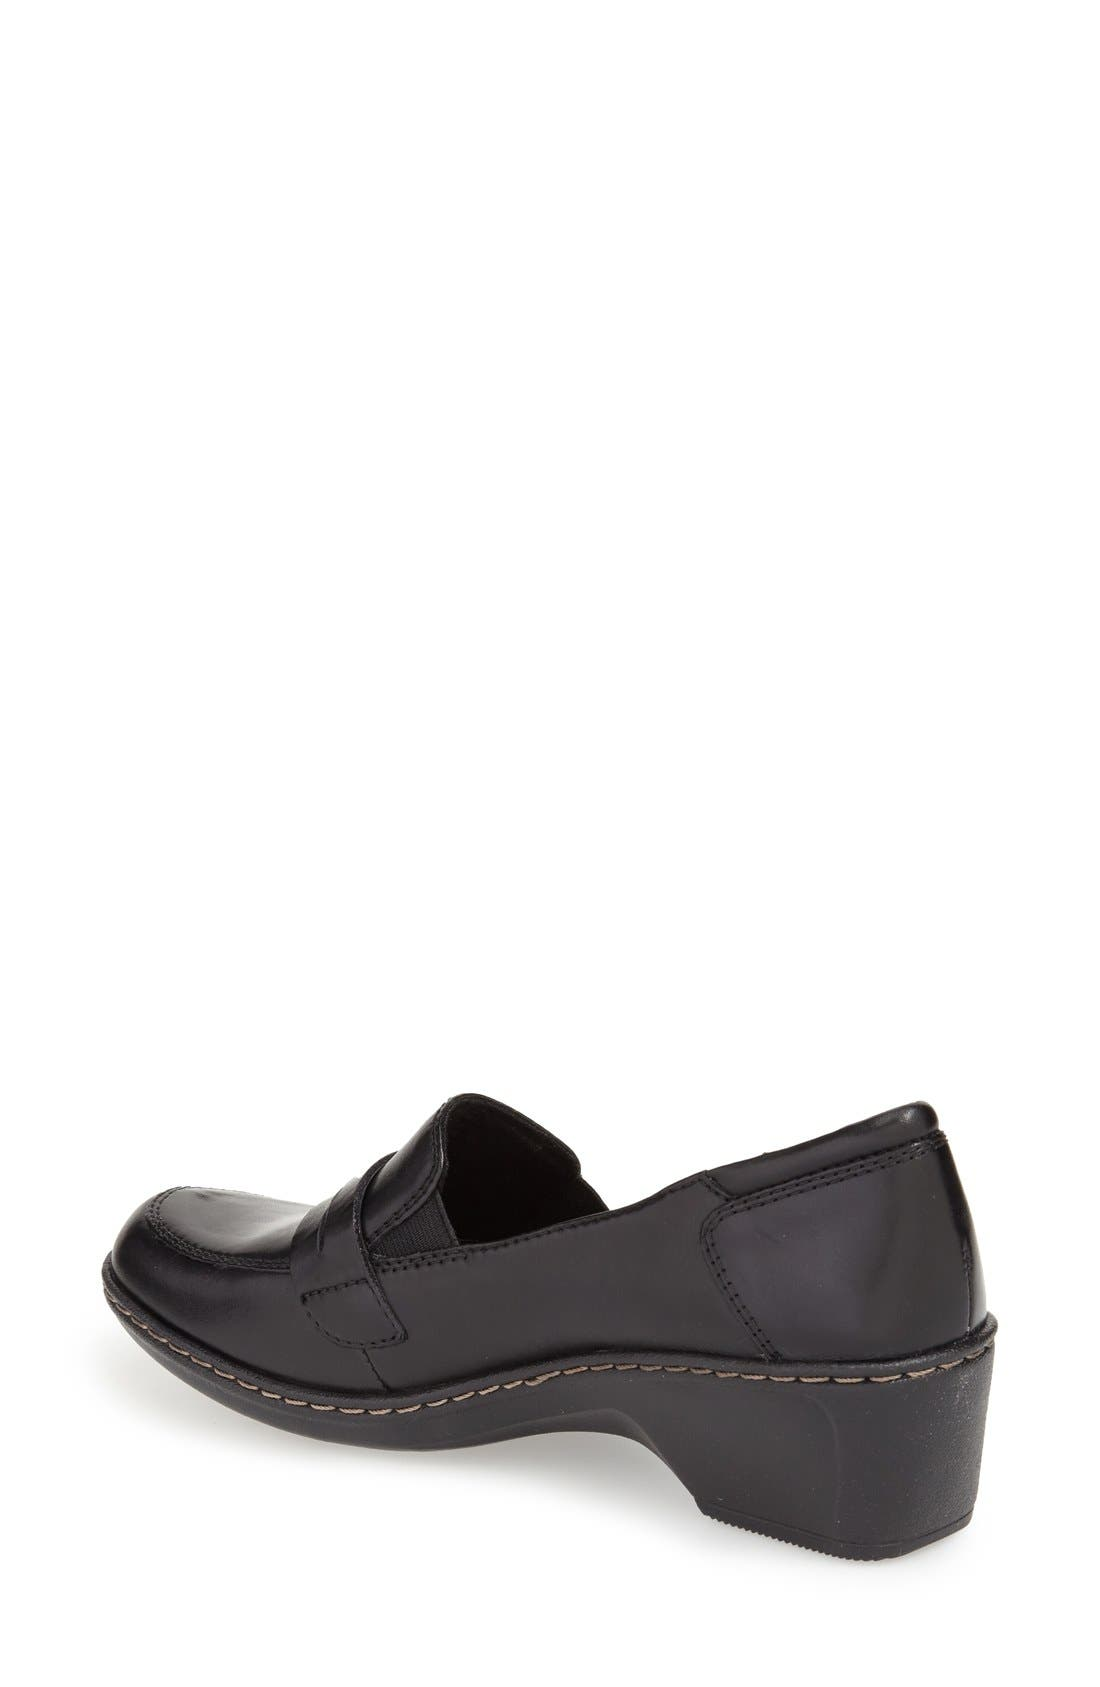 Cobb Hill 'Deidre' Loafer,                             Alternate thumbnail 2, color,                             Black Leather